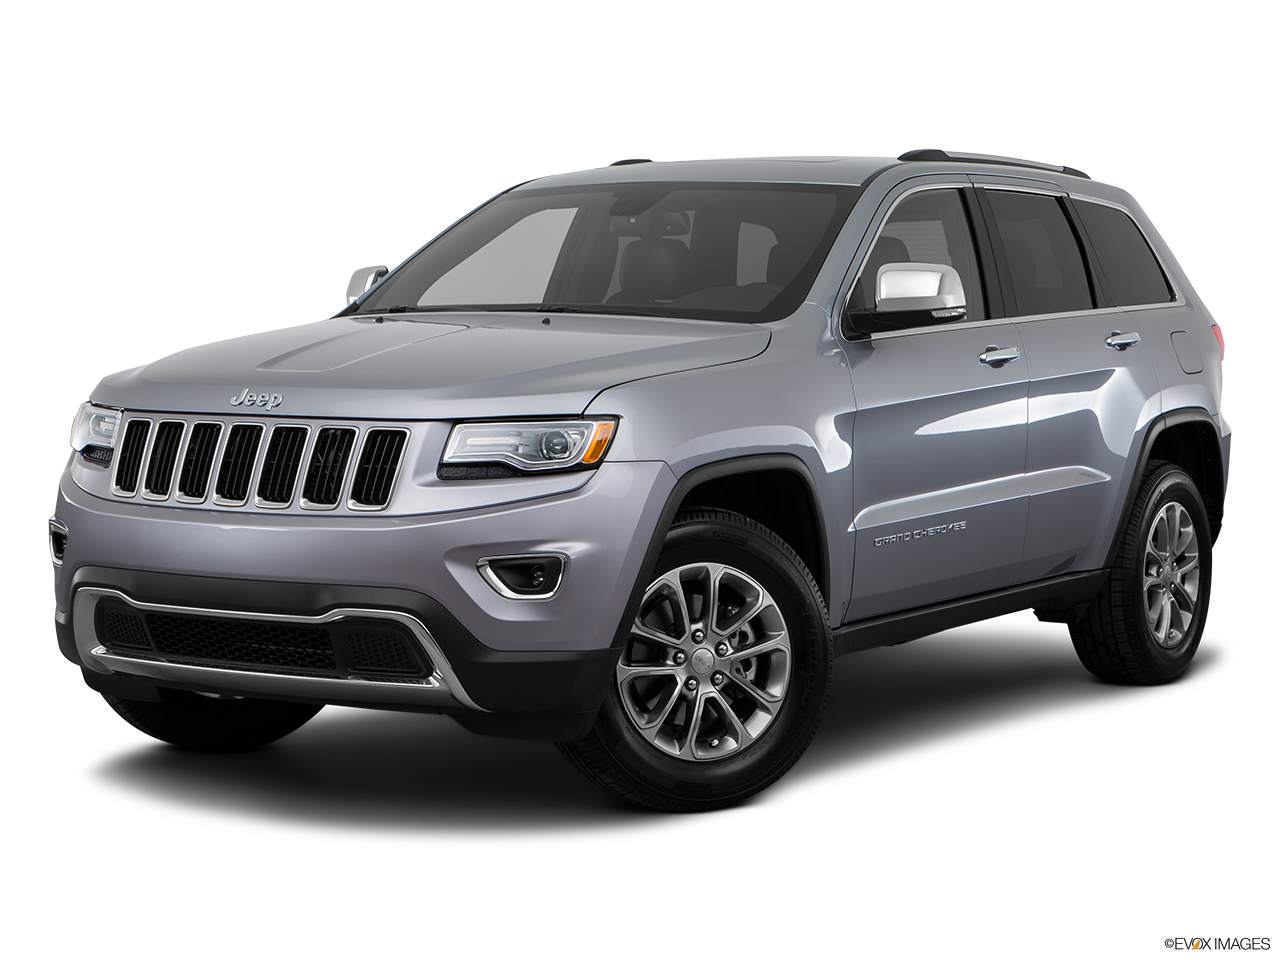 Test Drive A 2016 Jeep Grand Cherokee at Arrigo Of Sawgrass in Tamarac